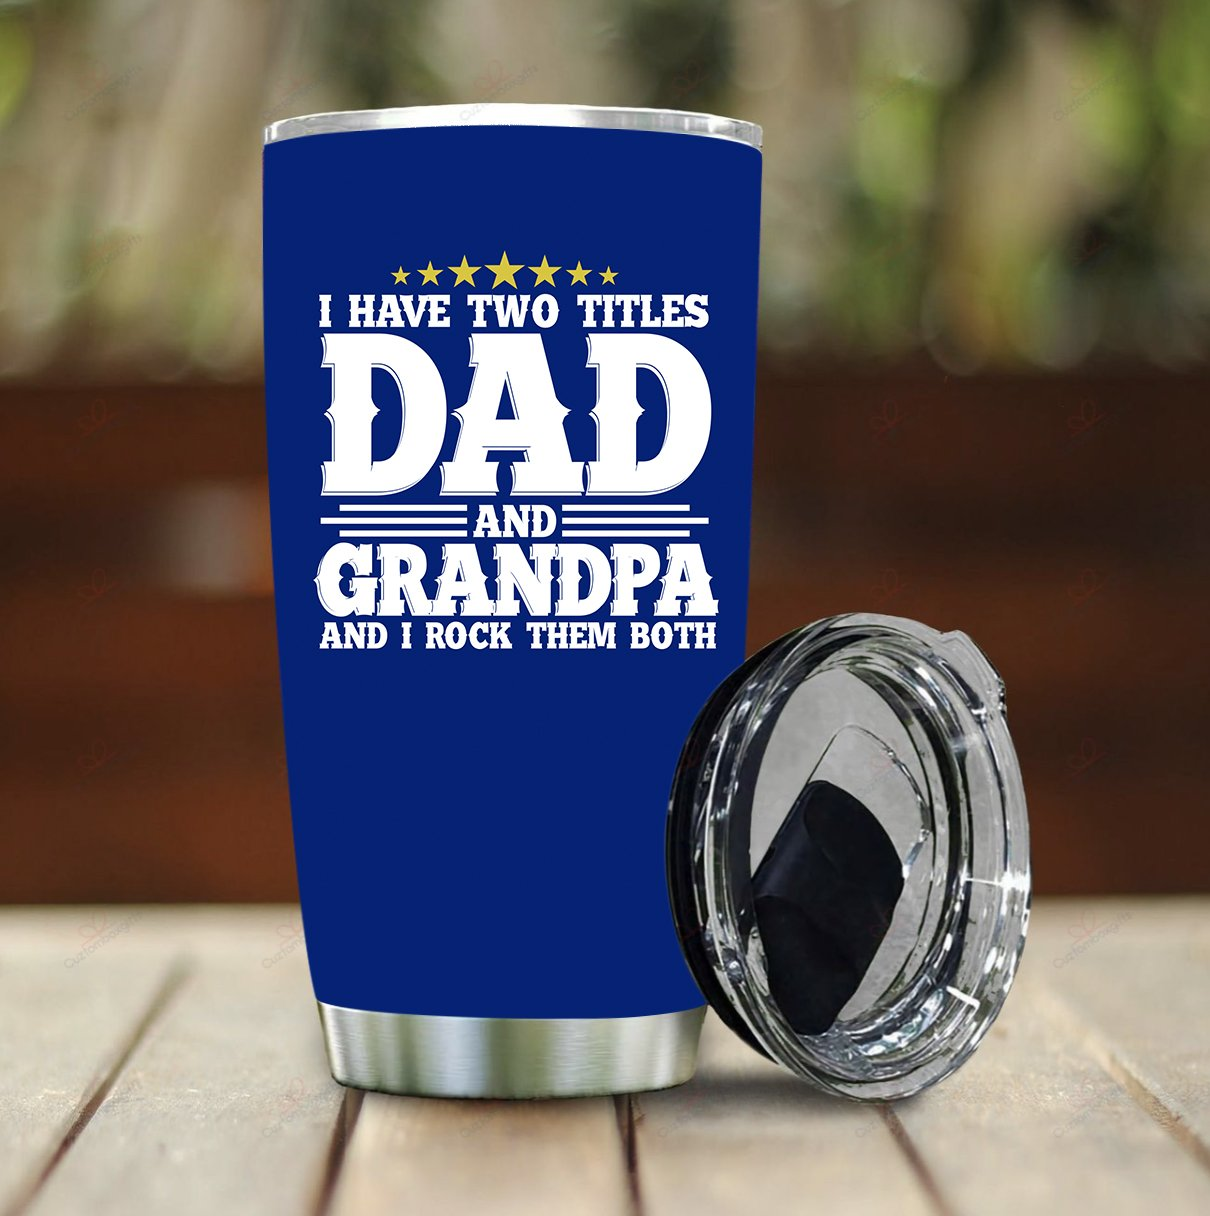 Dad and Grandpa Stainless Steel Tumbler